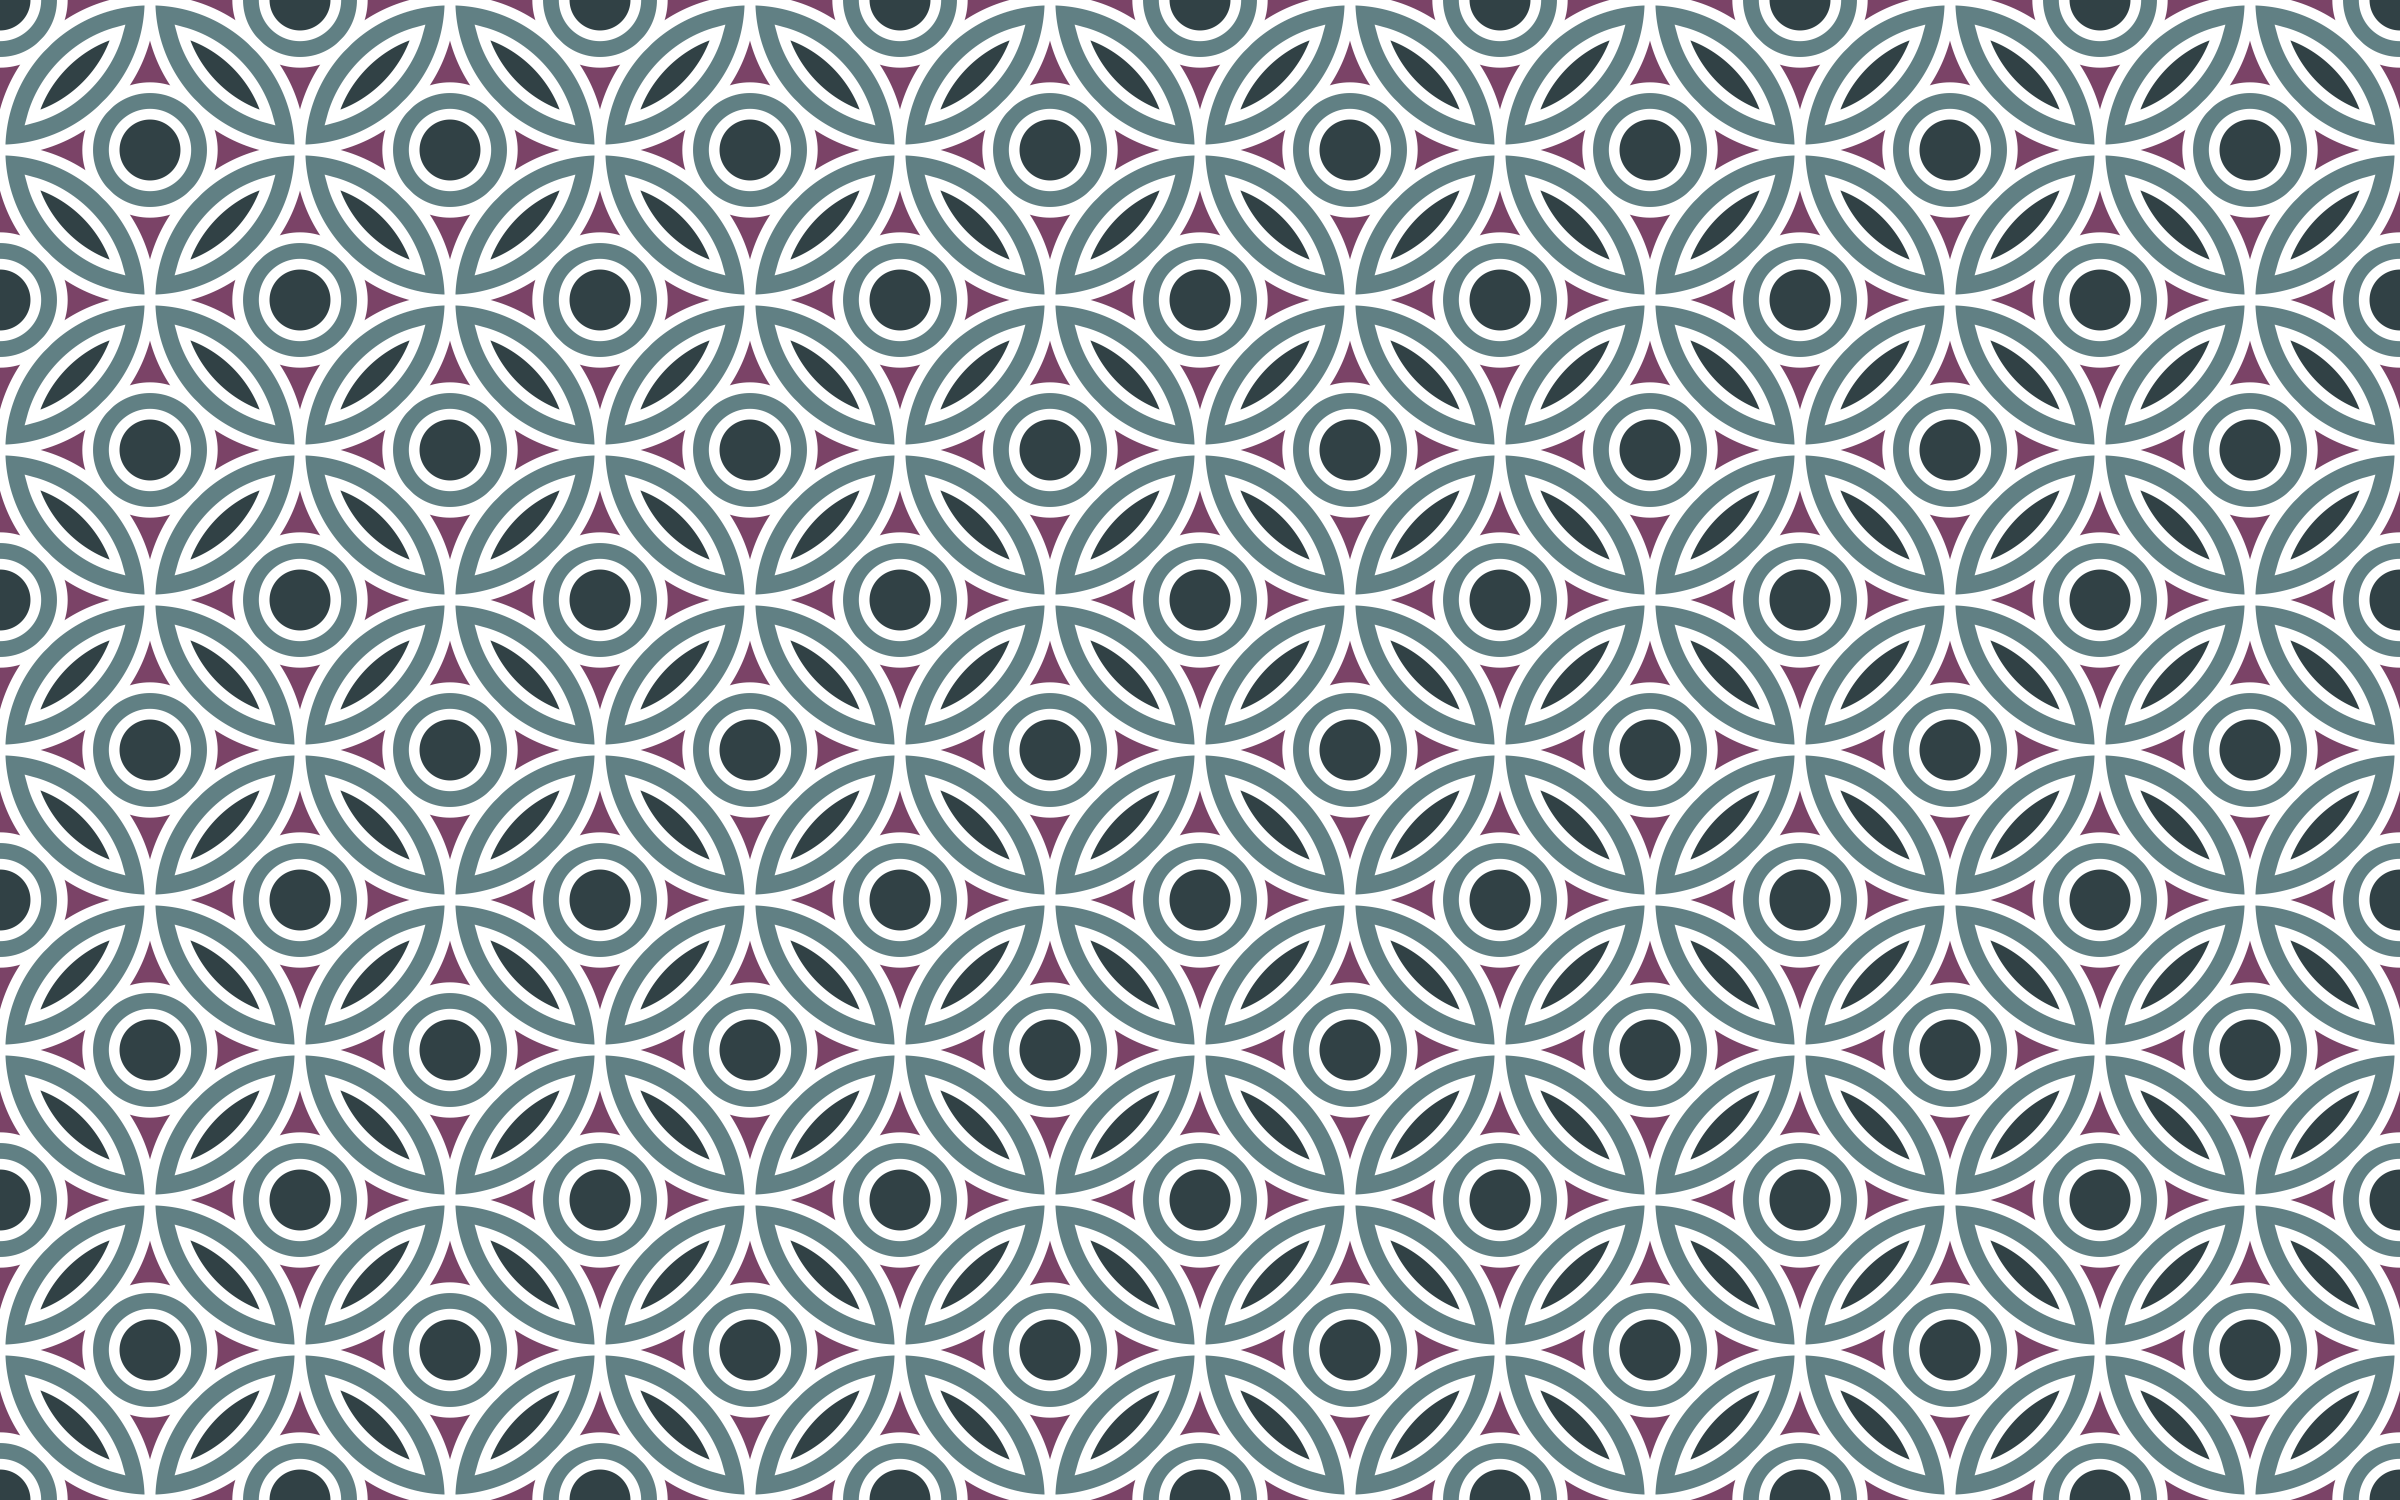 Background pattern 252 (colour 6) by Firkin